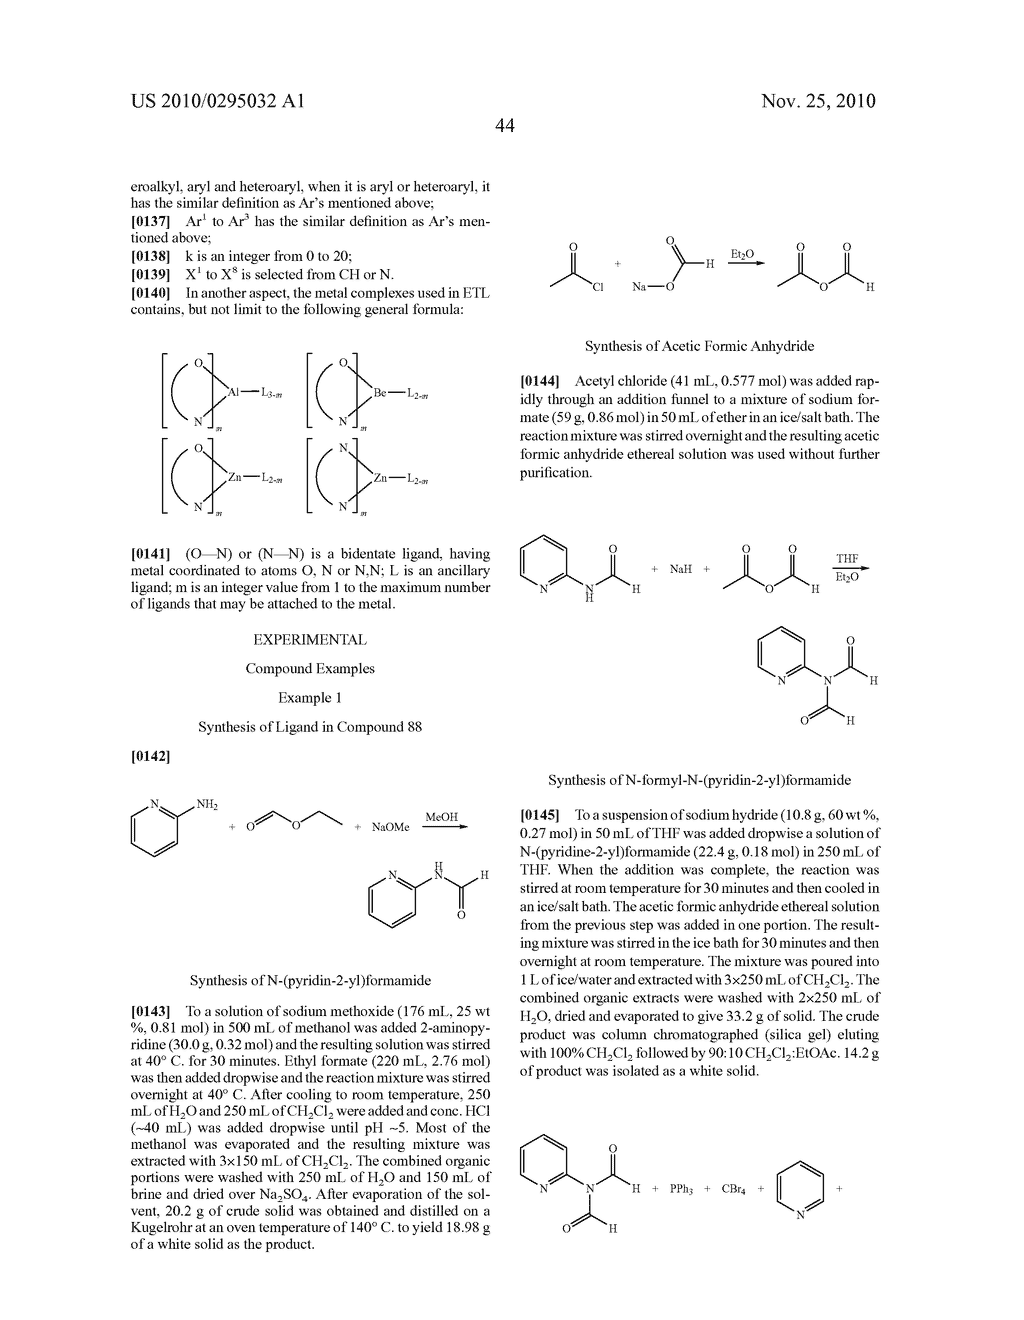 METAL COMPLEXES WITH BORON-NITROGEN HETEROCYCLE CONTAINING LIGANDS - diagram, schematic, and image 49